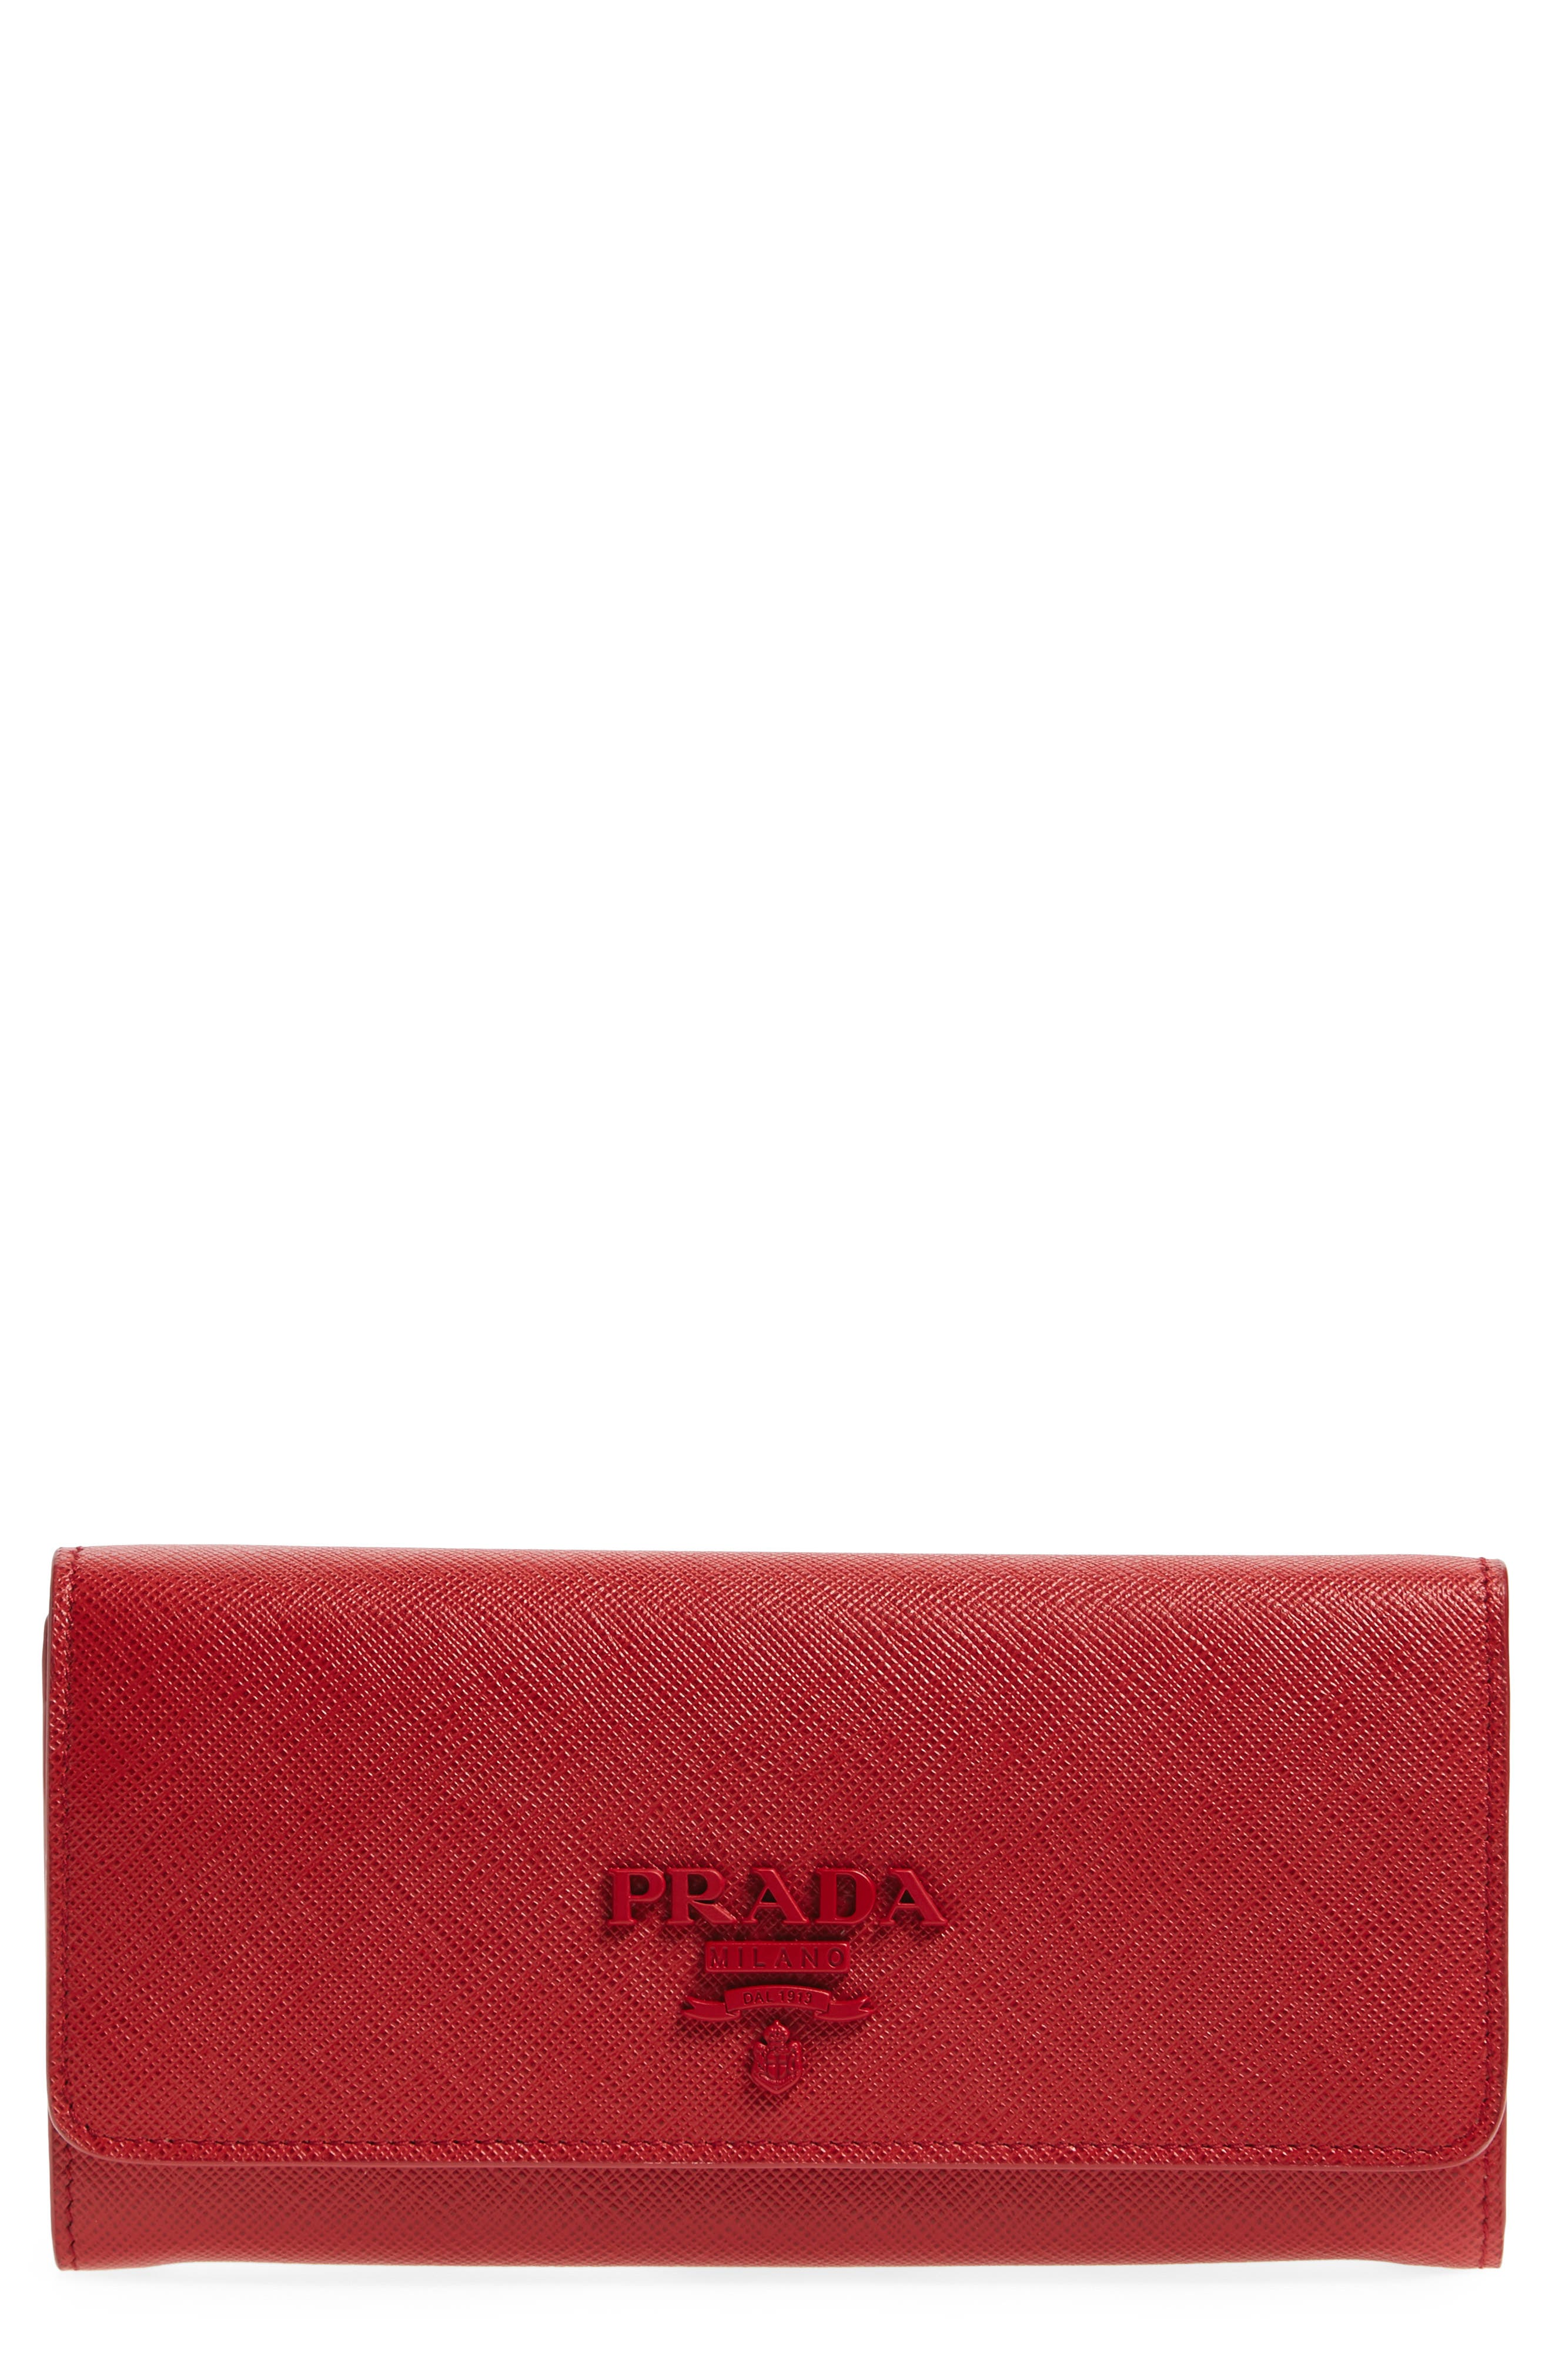 Saffiano Leather Wallet,                             Main thumbnail 1, color,                             Fuoco